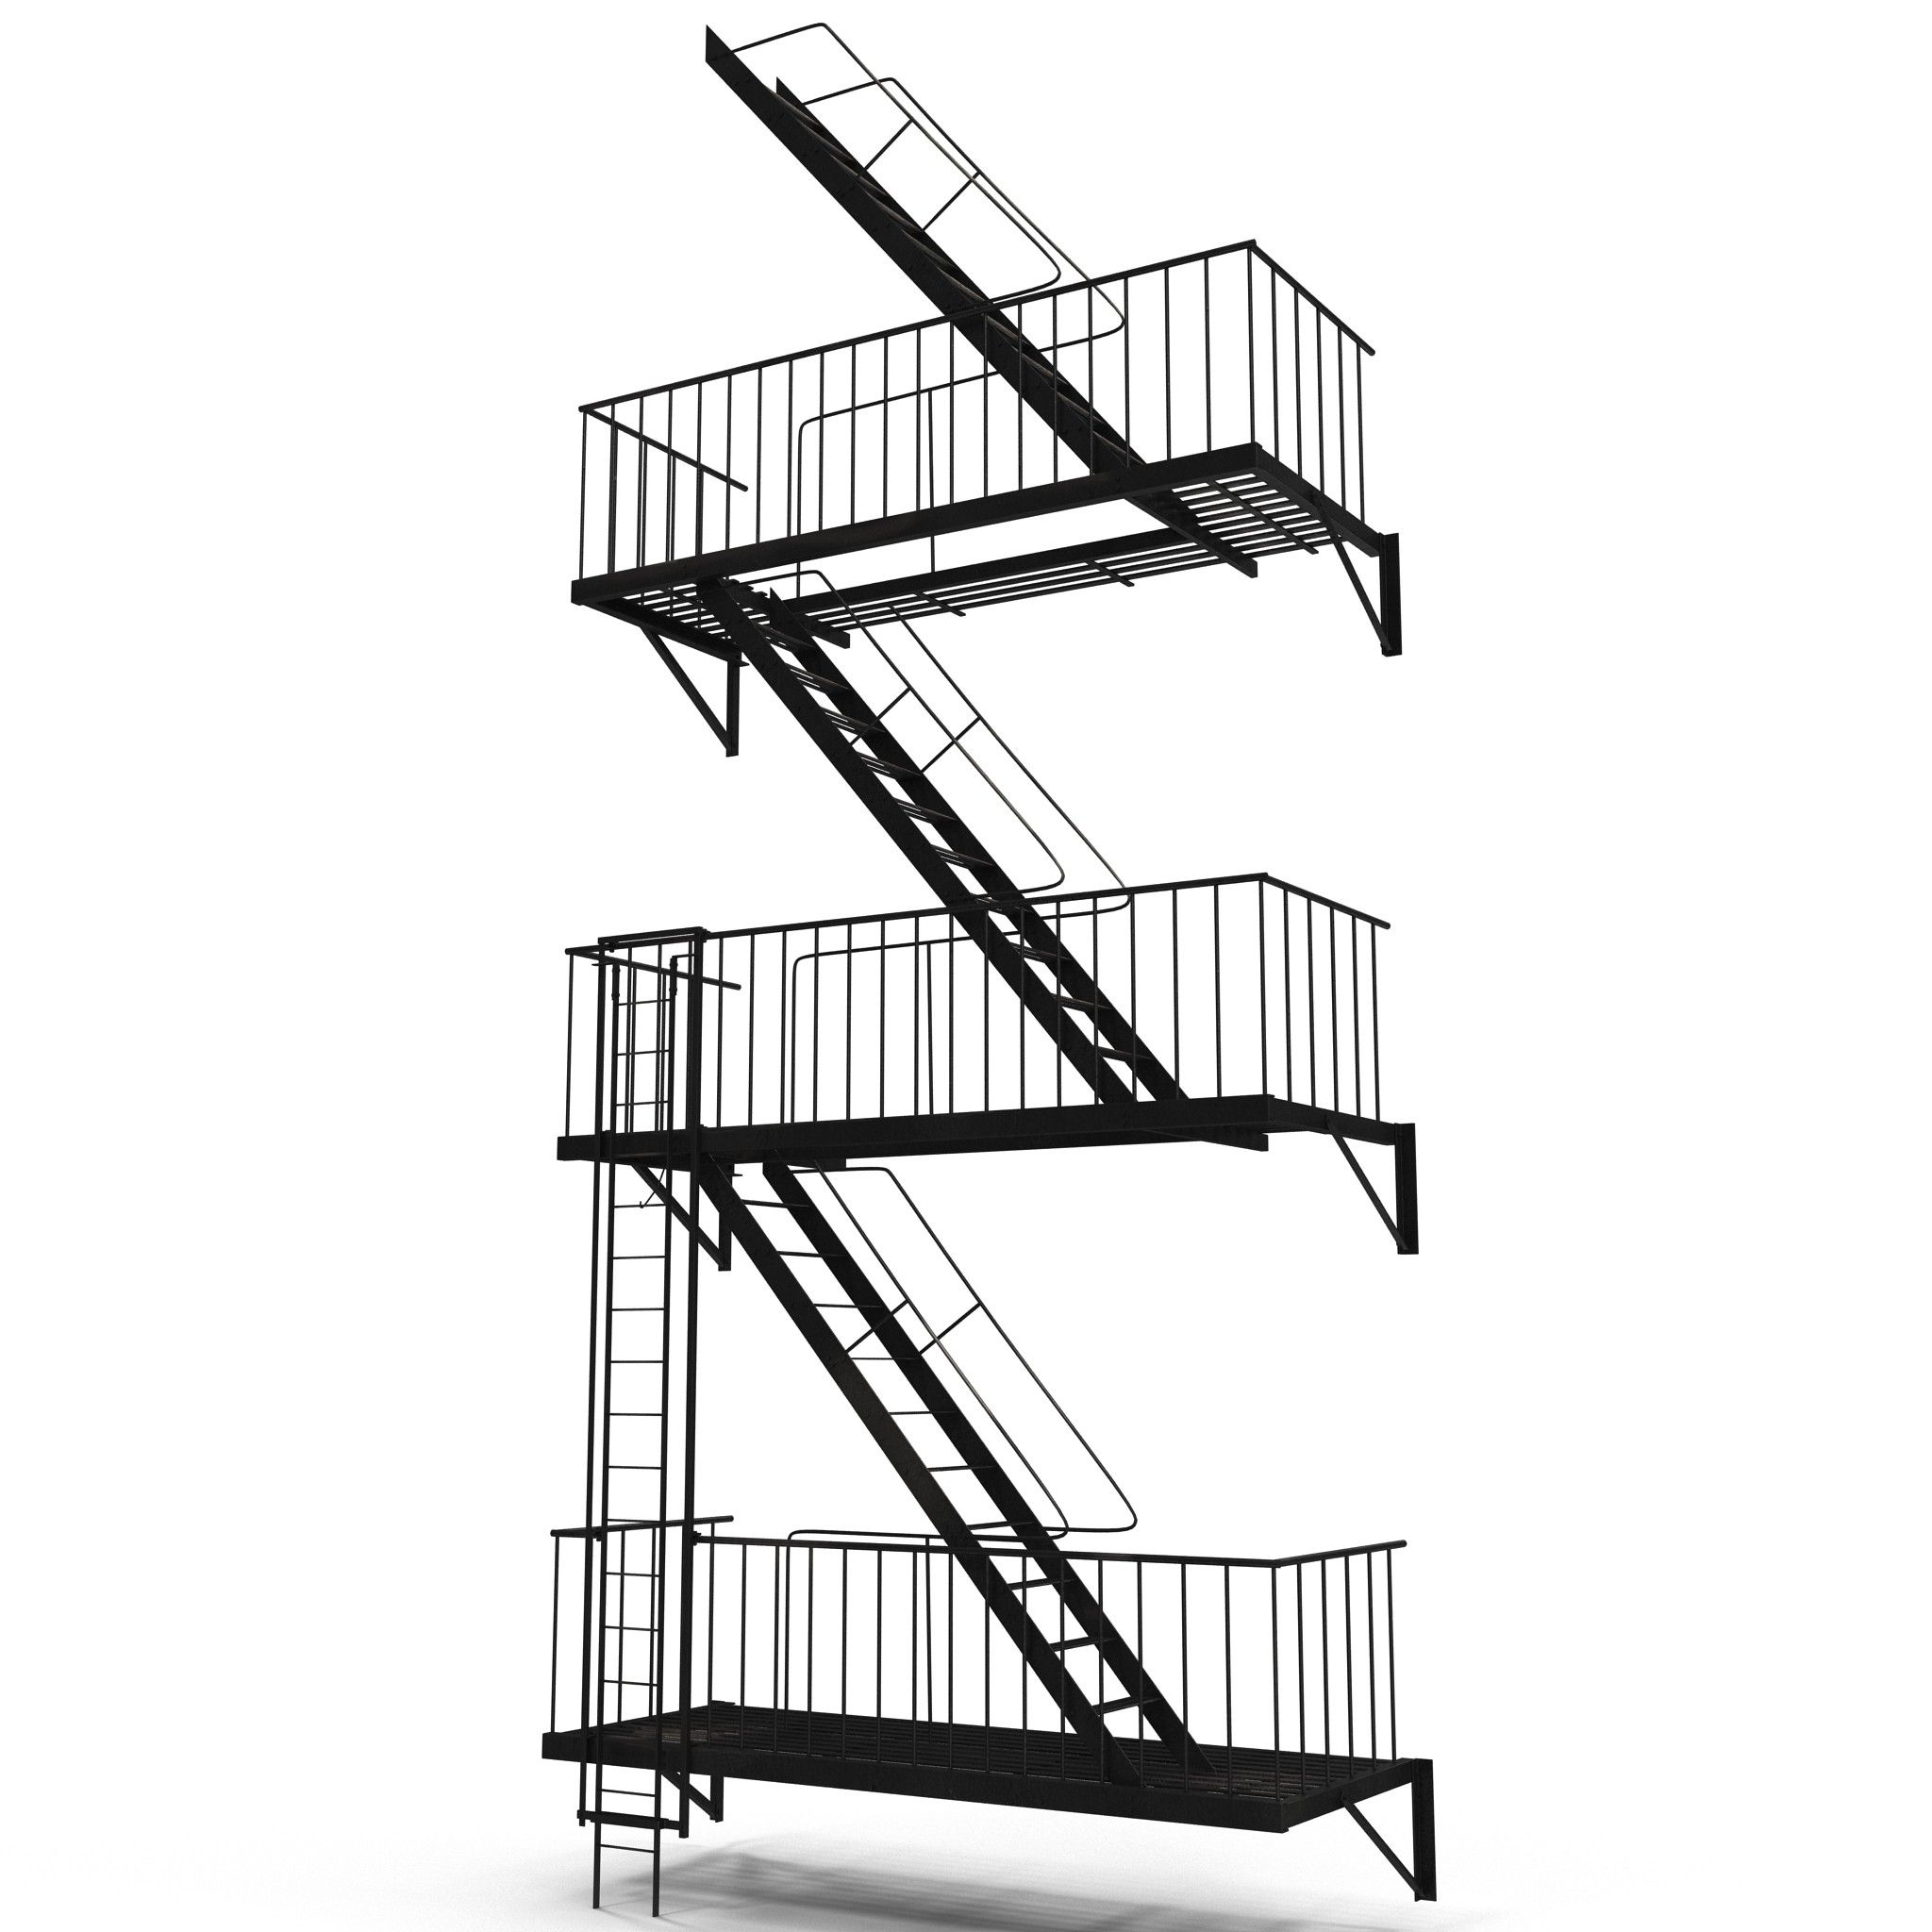 Fire Escape Stairs Model Available On Turbo Squid, The Worldu0027s Leading  Provider Of Digital Models For Visualization, Films, Television, And Games.